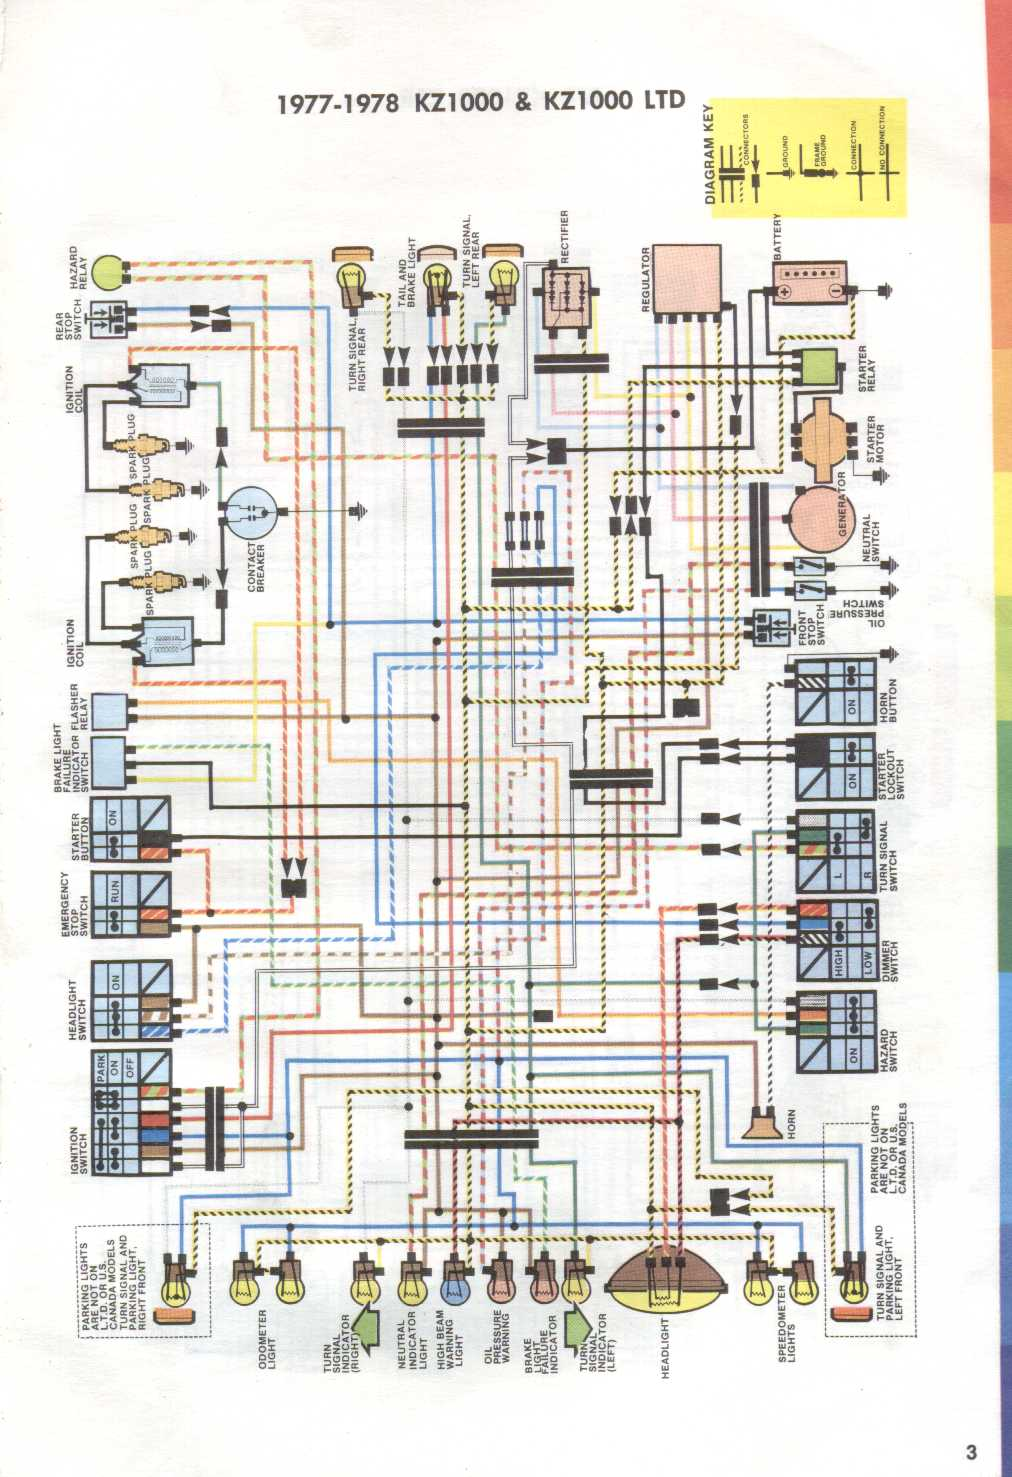 1984 Kawasaki Voyager Wiring Diagram Libraries Library1984